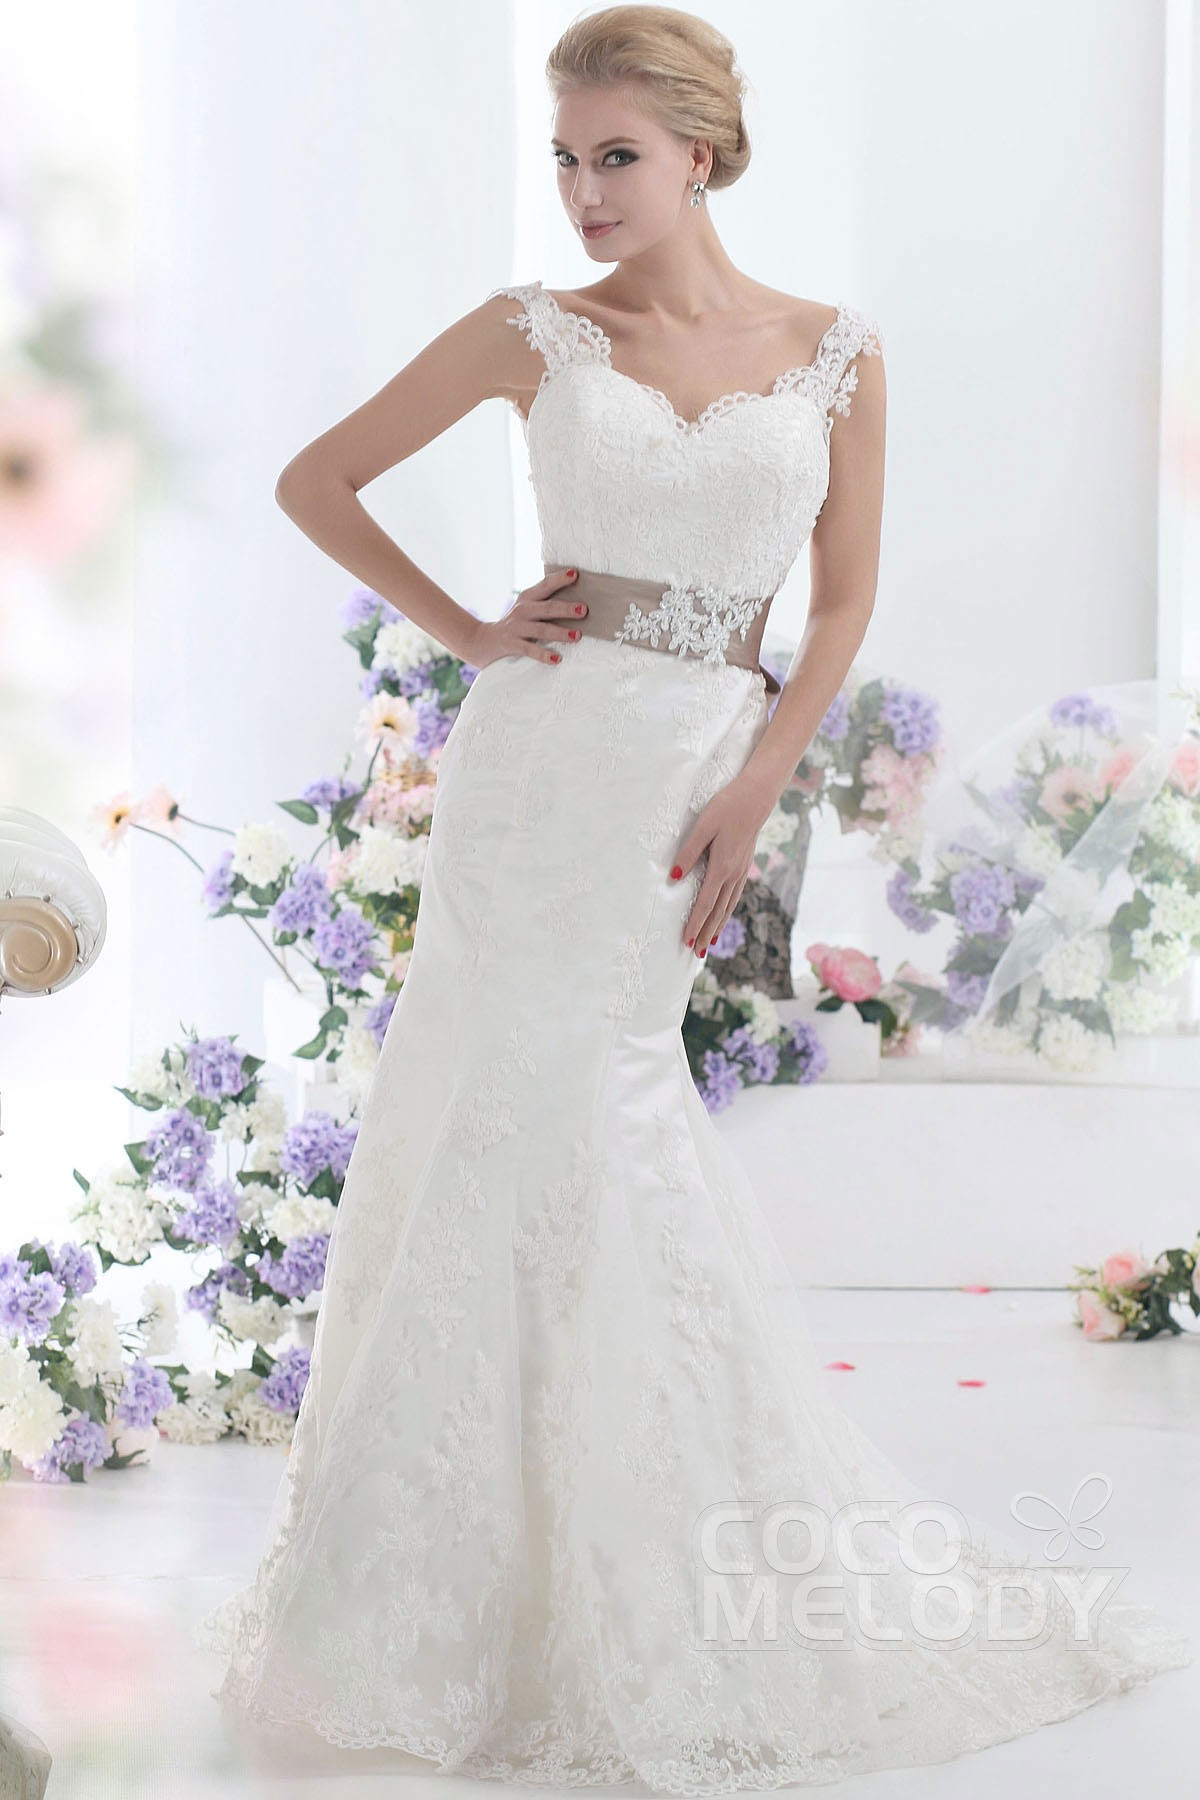 Trumpet-Mermaid Train Lace Wedding Dress CWVT13002 | Cocomelody